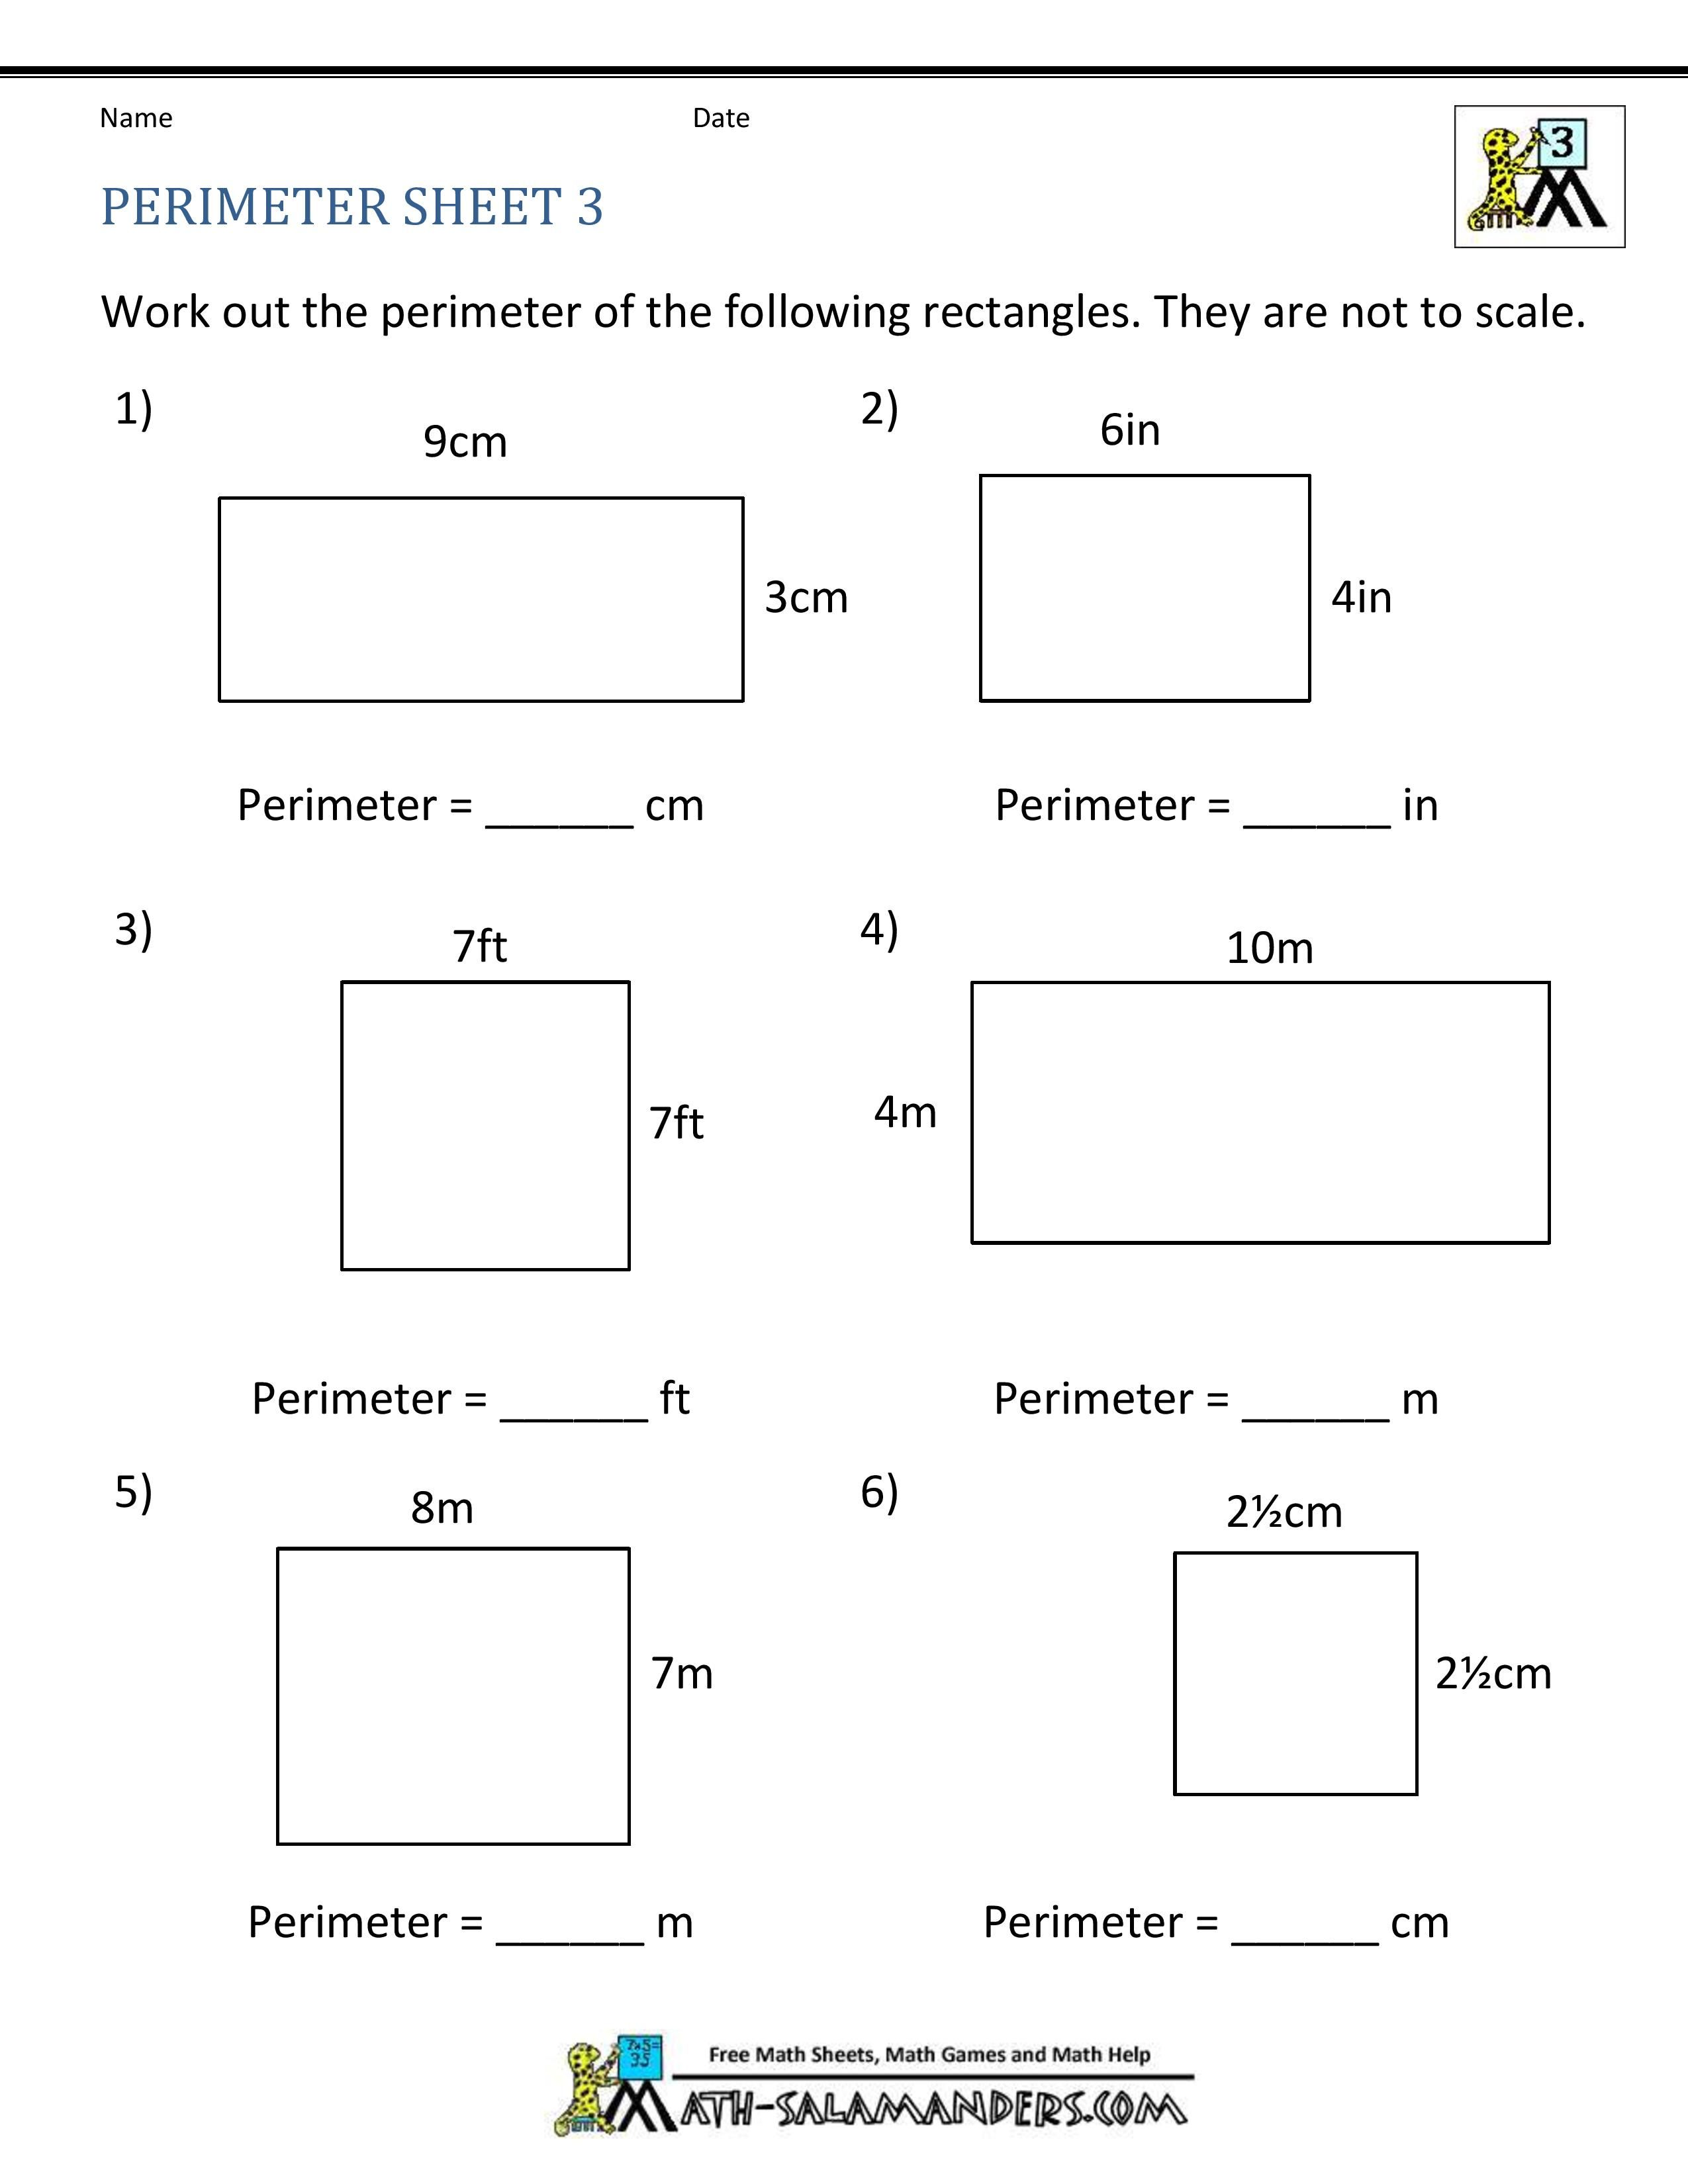 Best 10 Area And Perimeter Worksheet You Calendars Https Www Youcalendars Com Area A In 2020 Area And Perimeter Worksheets Perimeter Worksheets Area Worksheets